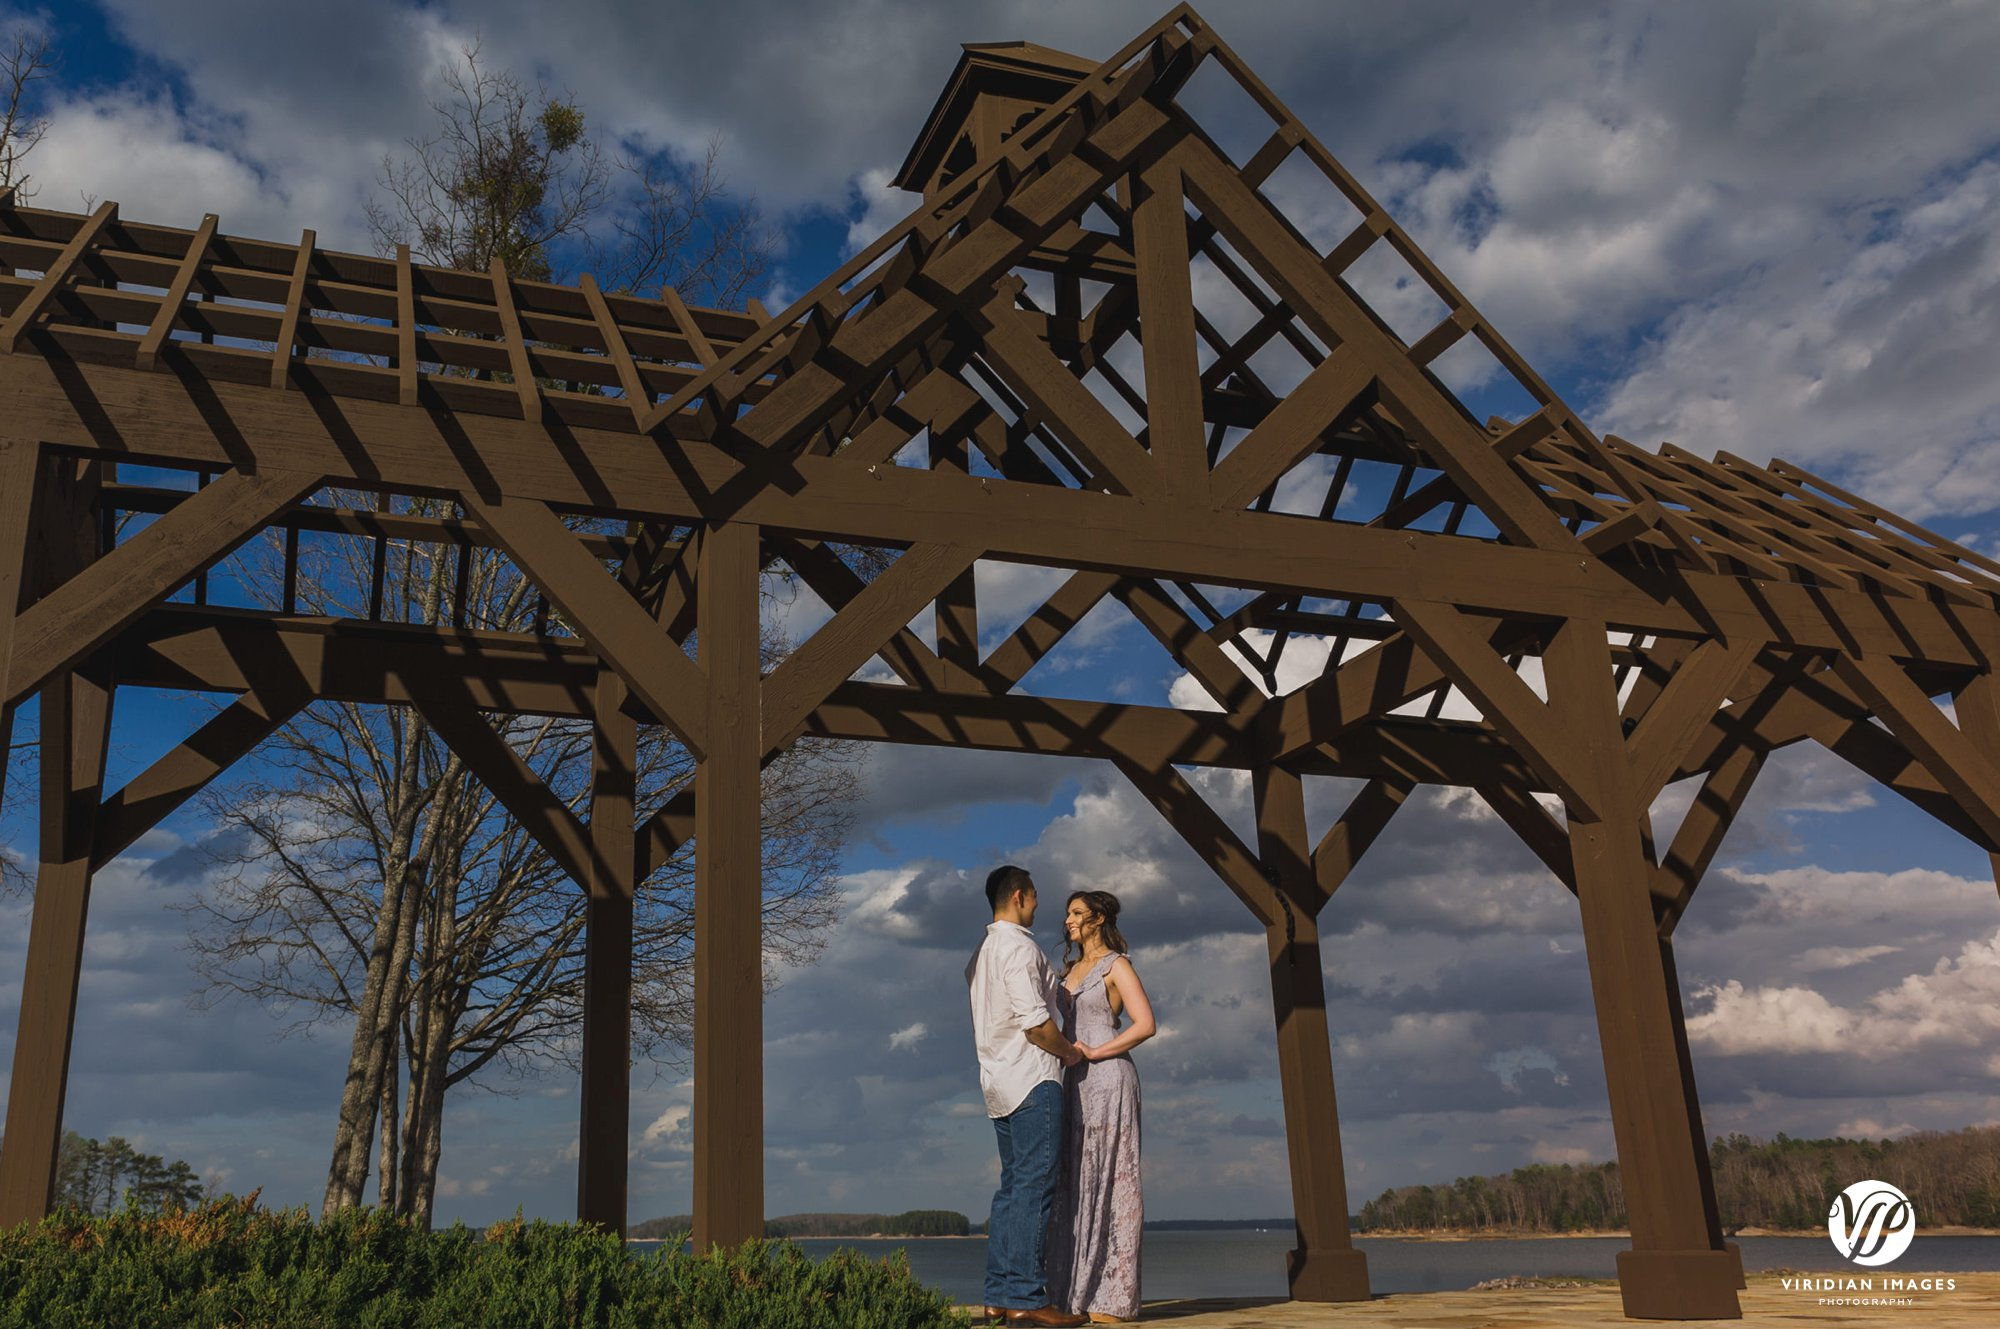 pineisle couple under pergola